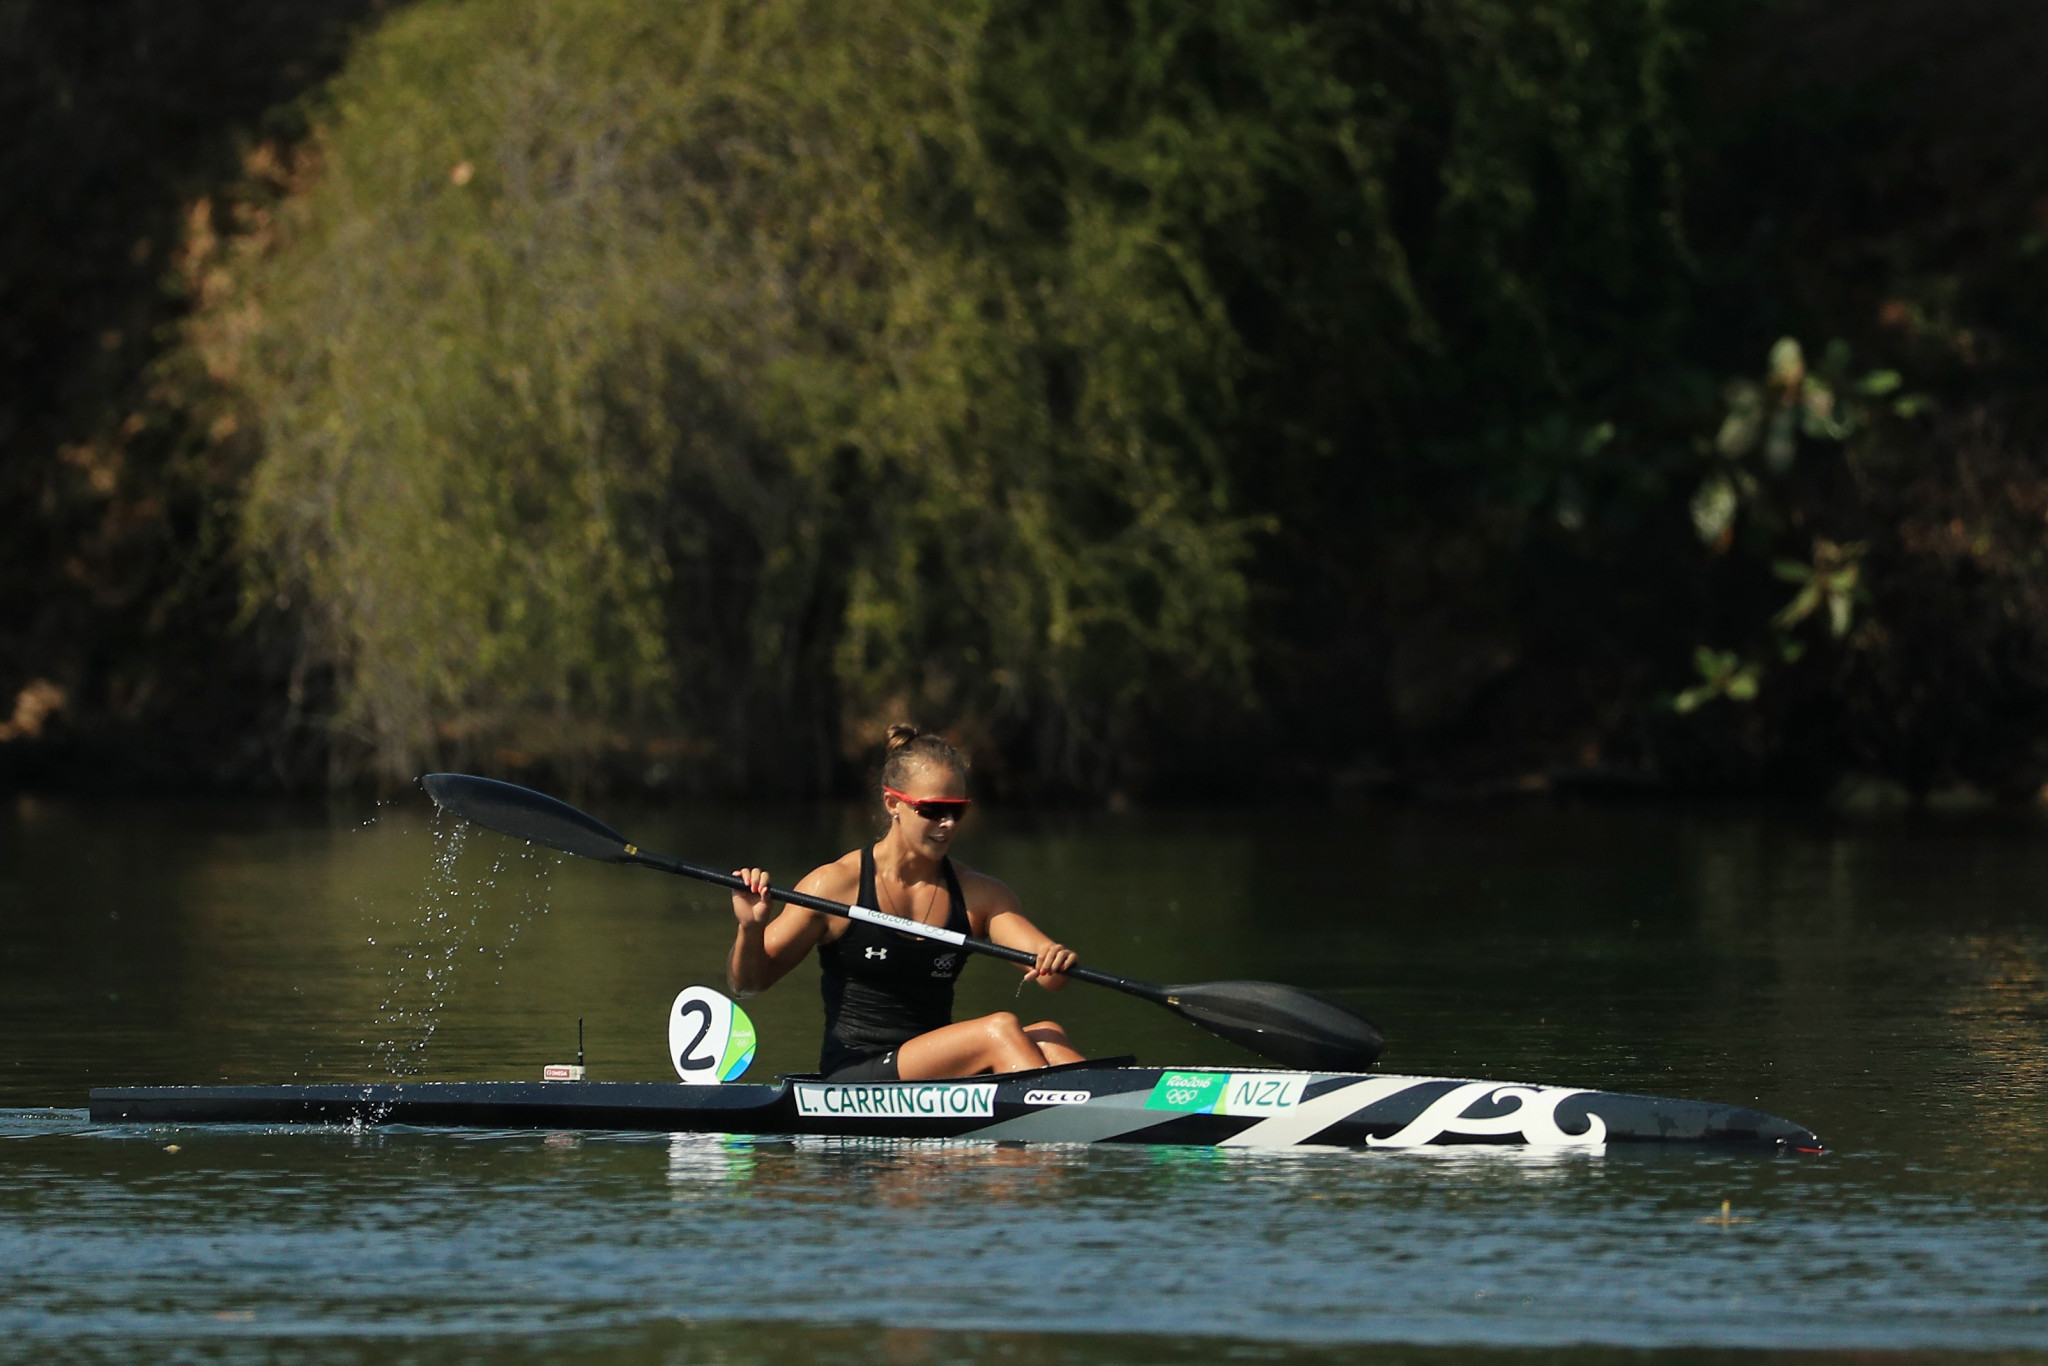 Carrington world title voted best canoeing moment of 2017